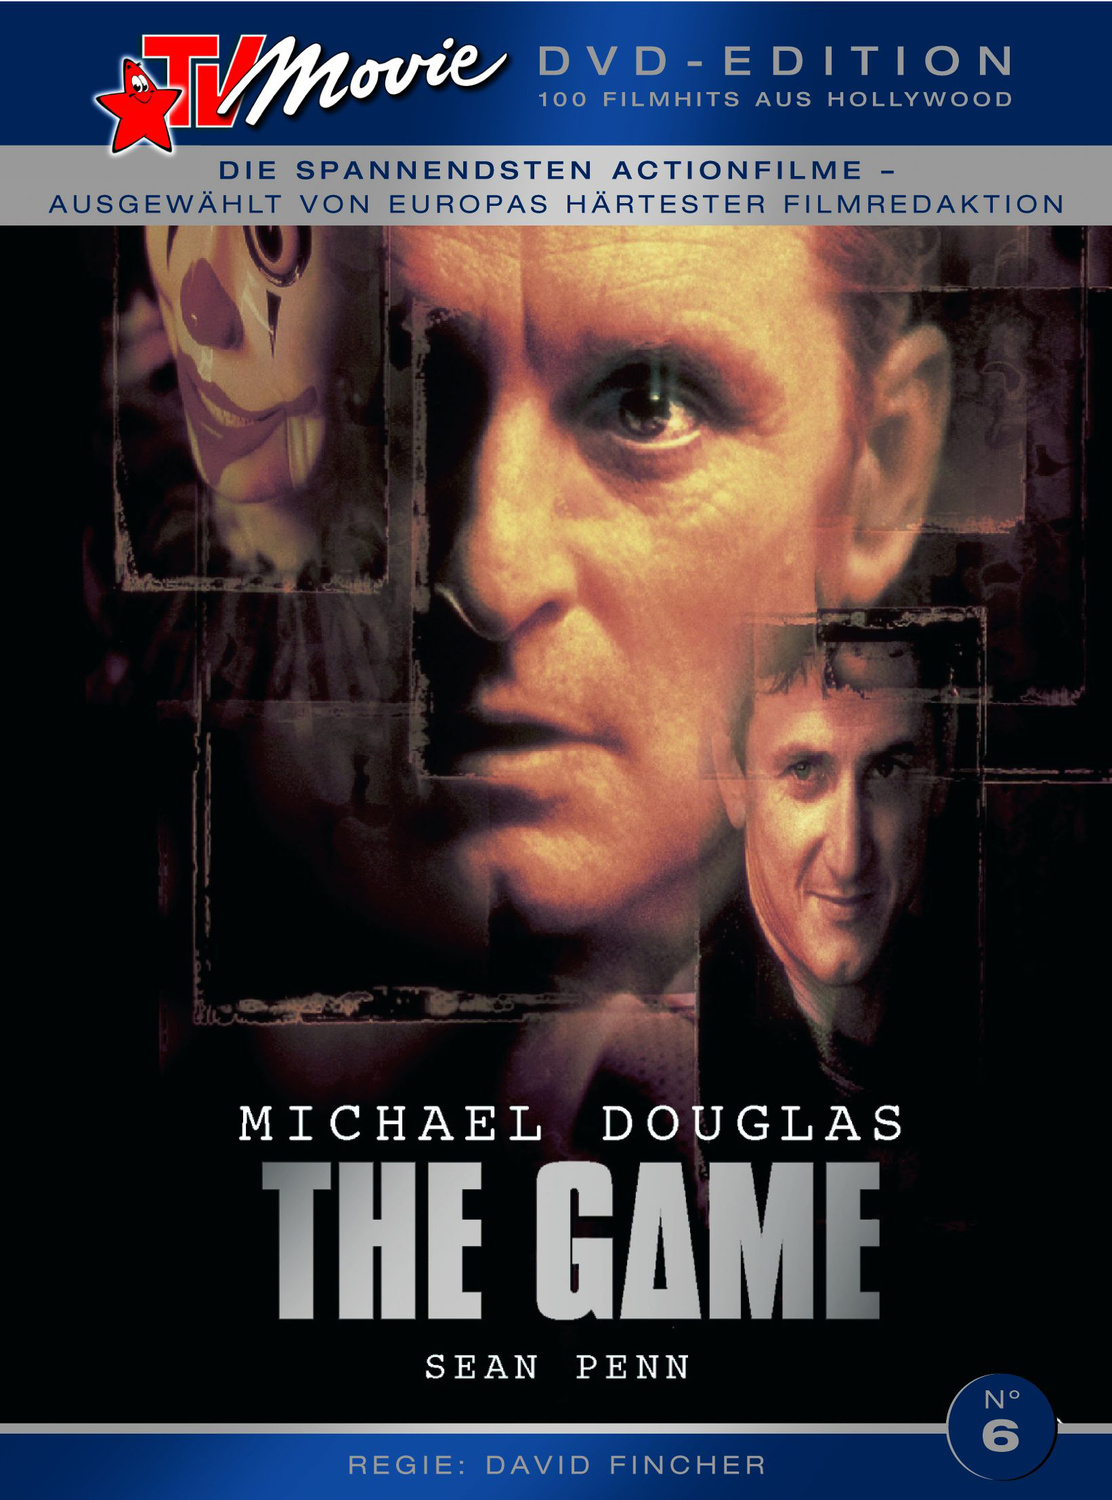 Game, The - TV Movie Edition